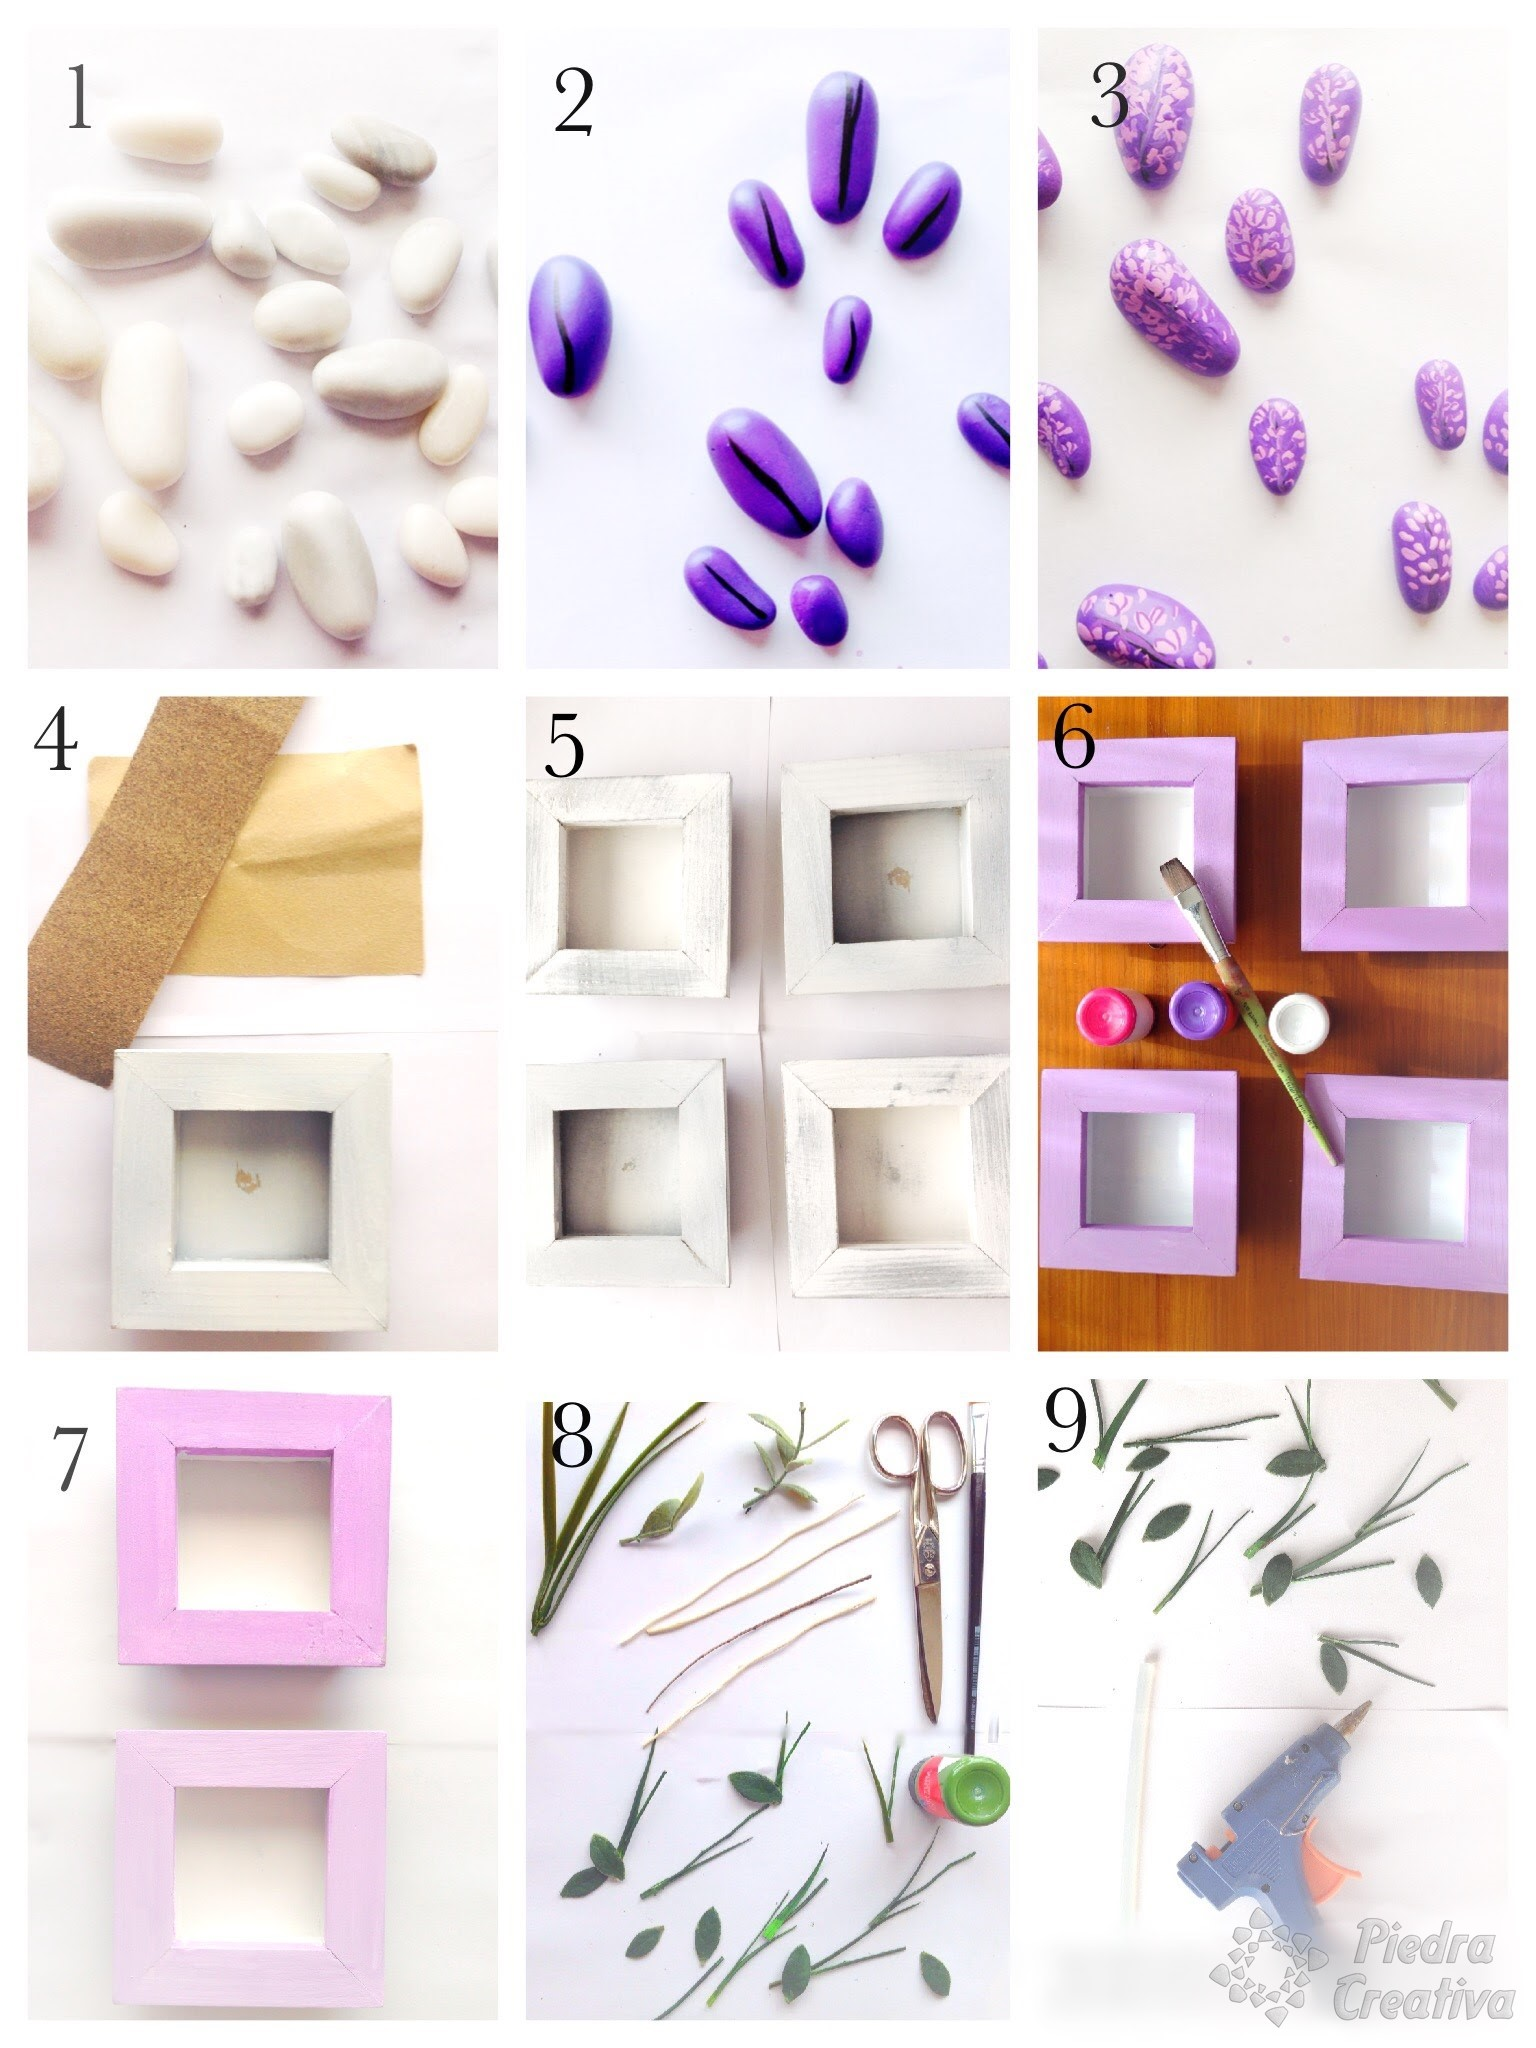 cuadros decorativos con piedras en piedracreativa diy